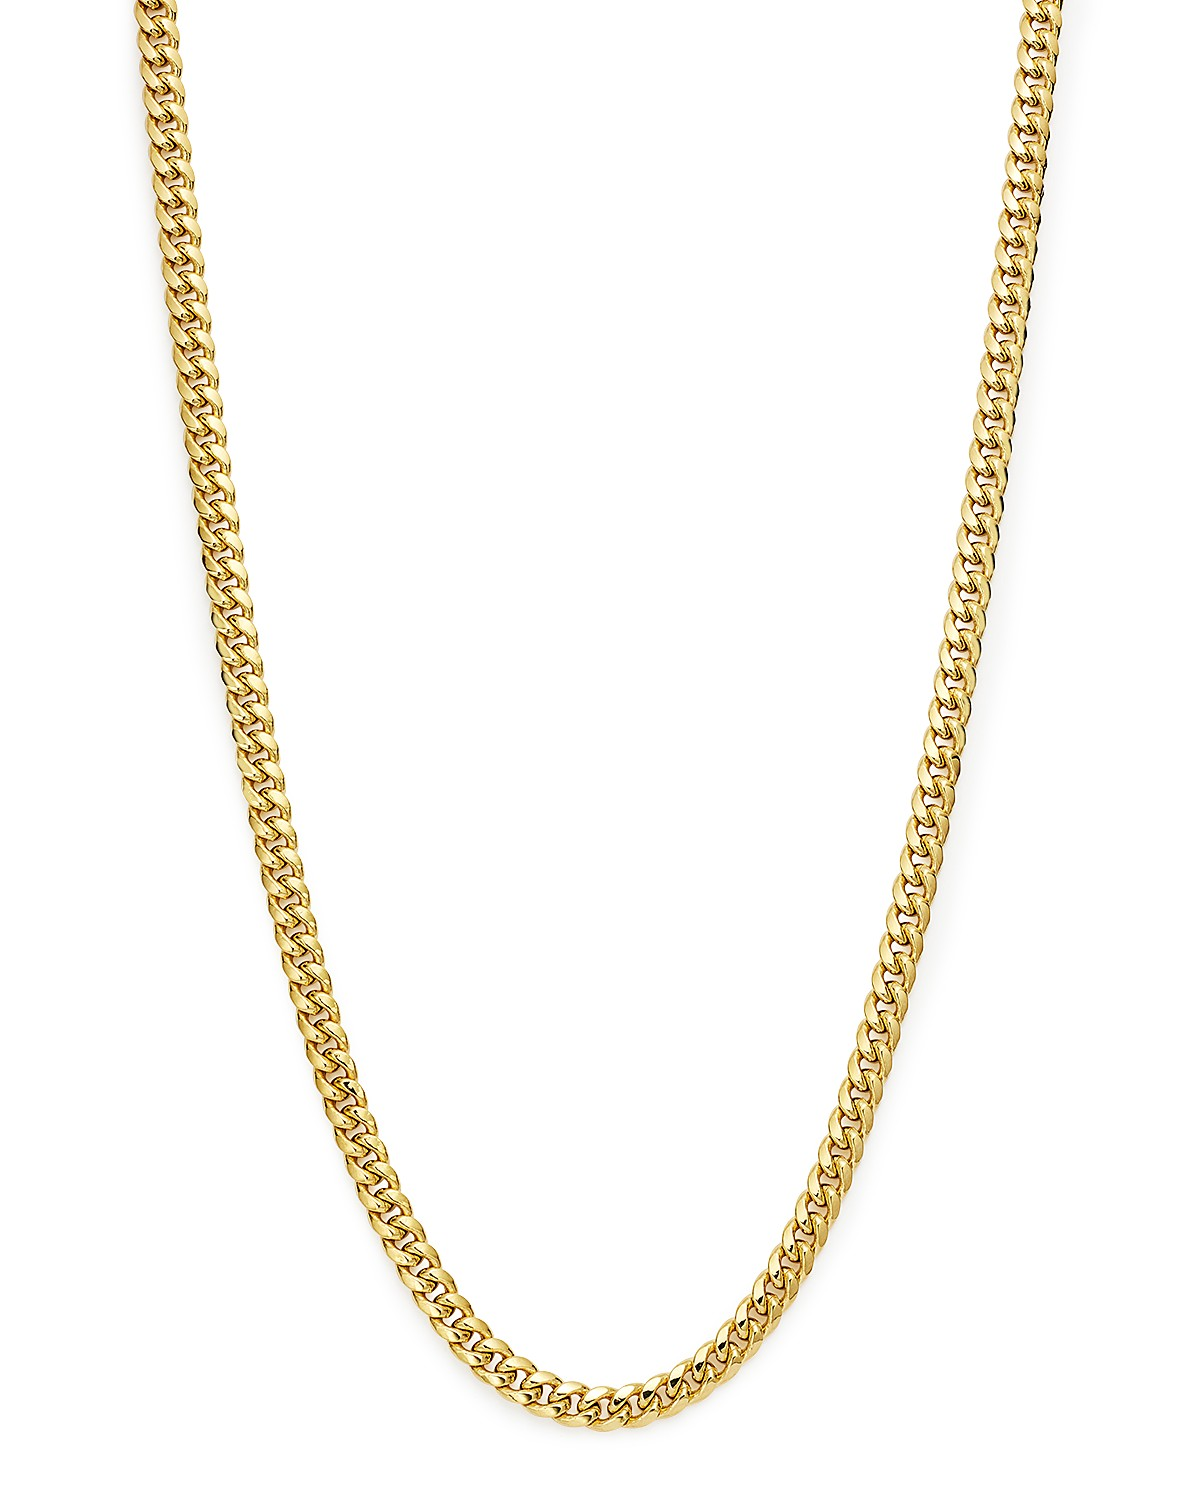 necklaces necklace male curb chain gold nipped en model female rada